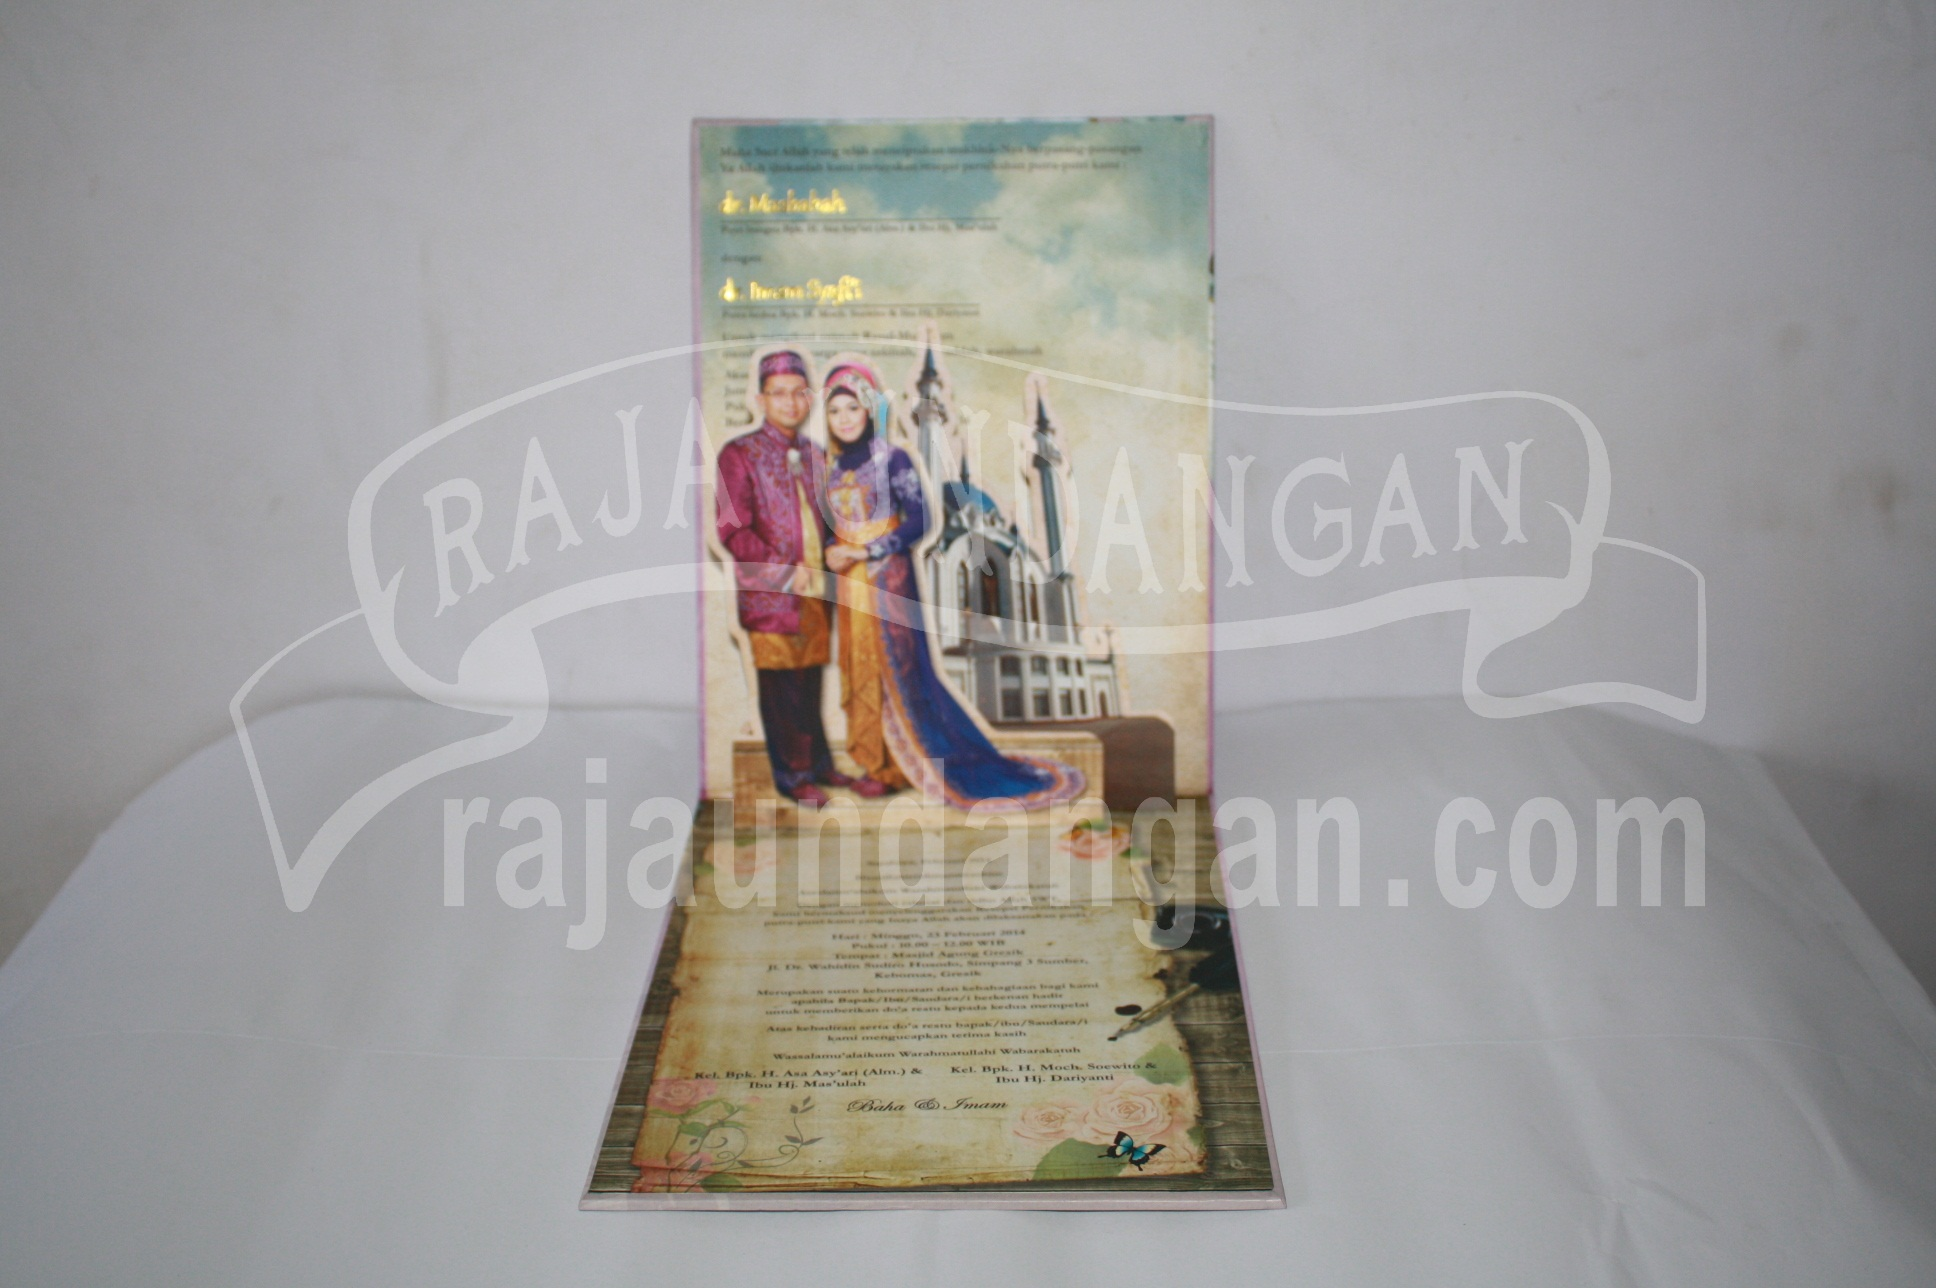 Undangan Pernikahan Hardcover Pop Up 3D Baha dan Imam EDC 49 31 - Cetak Wedding Invitations Unik di Babakan Jerawat